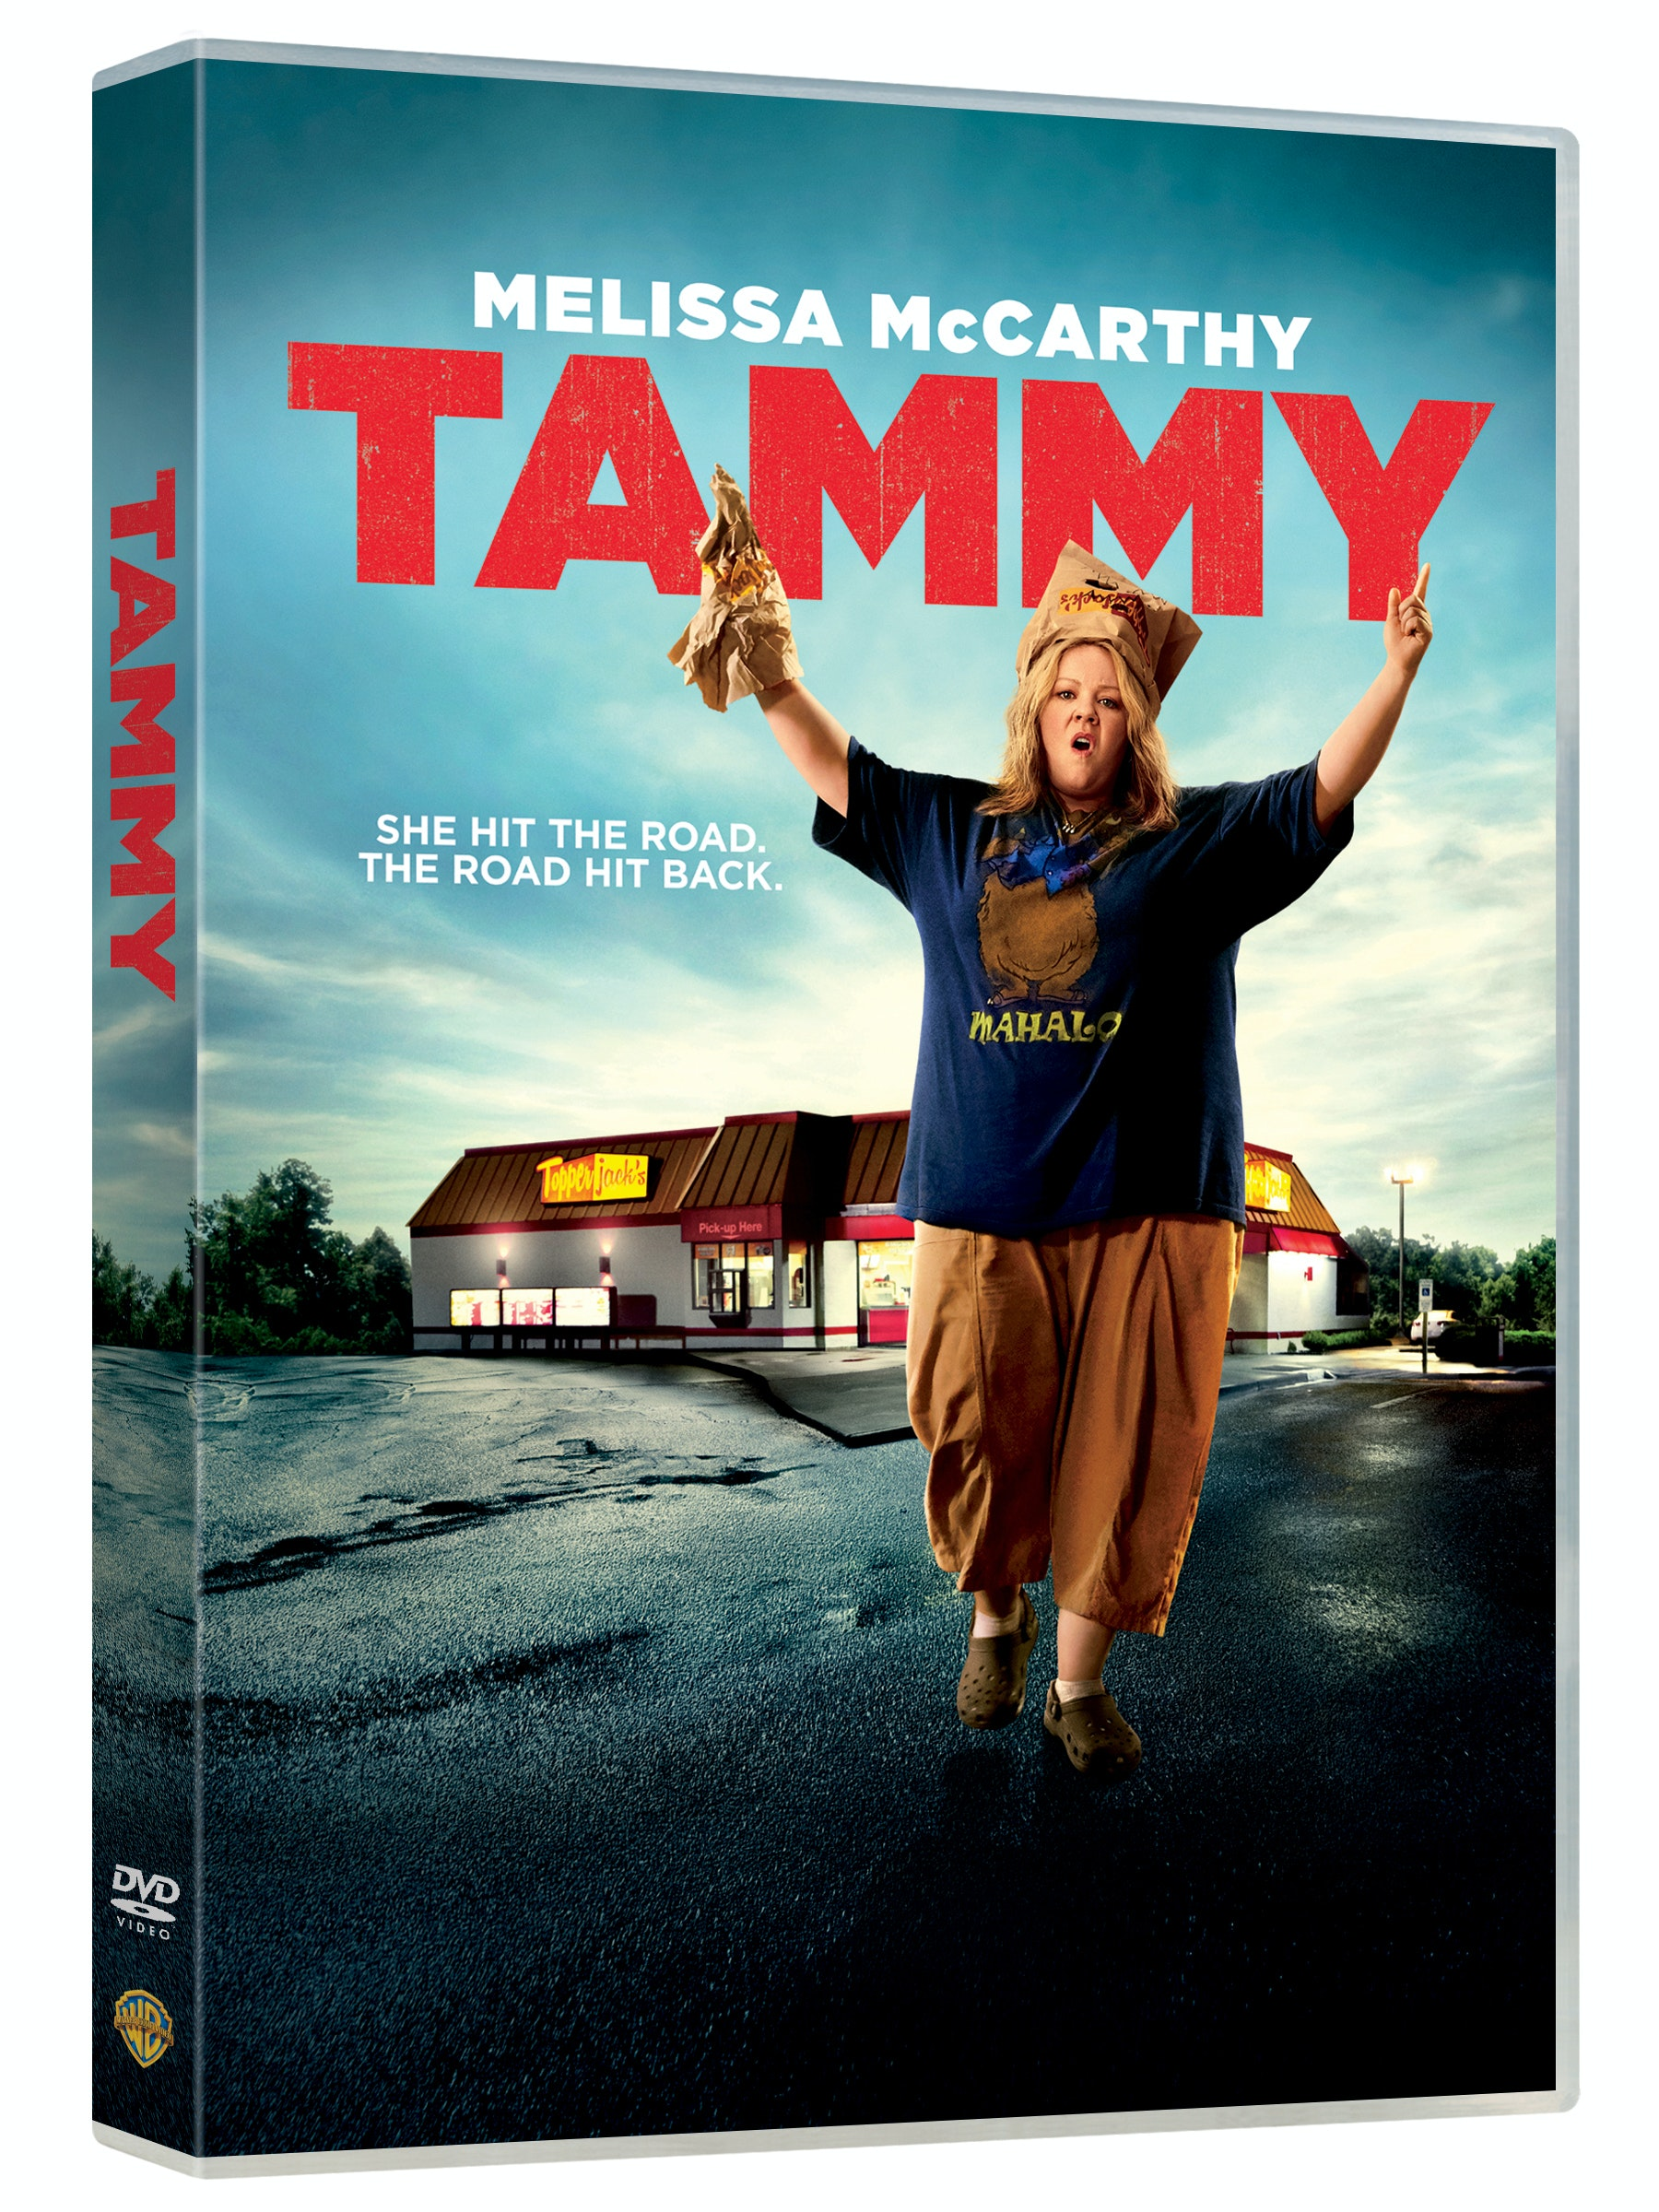 Tammy sweepstakes